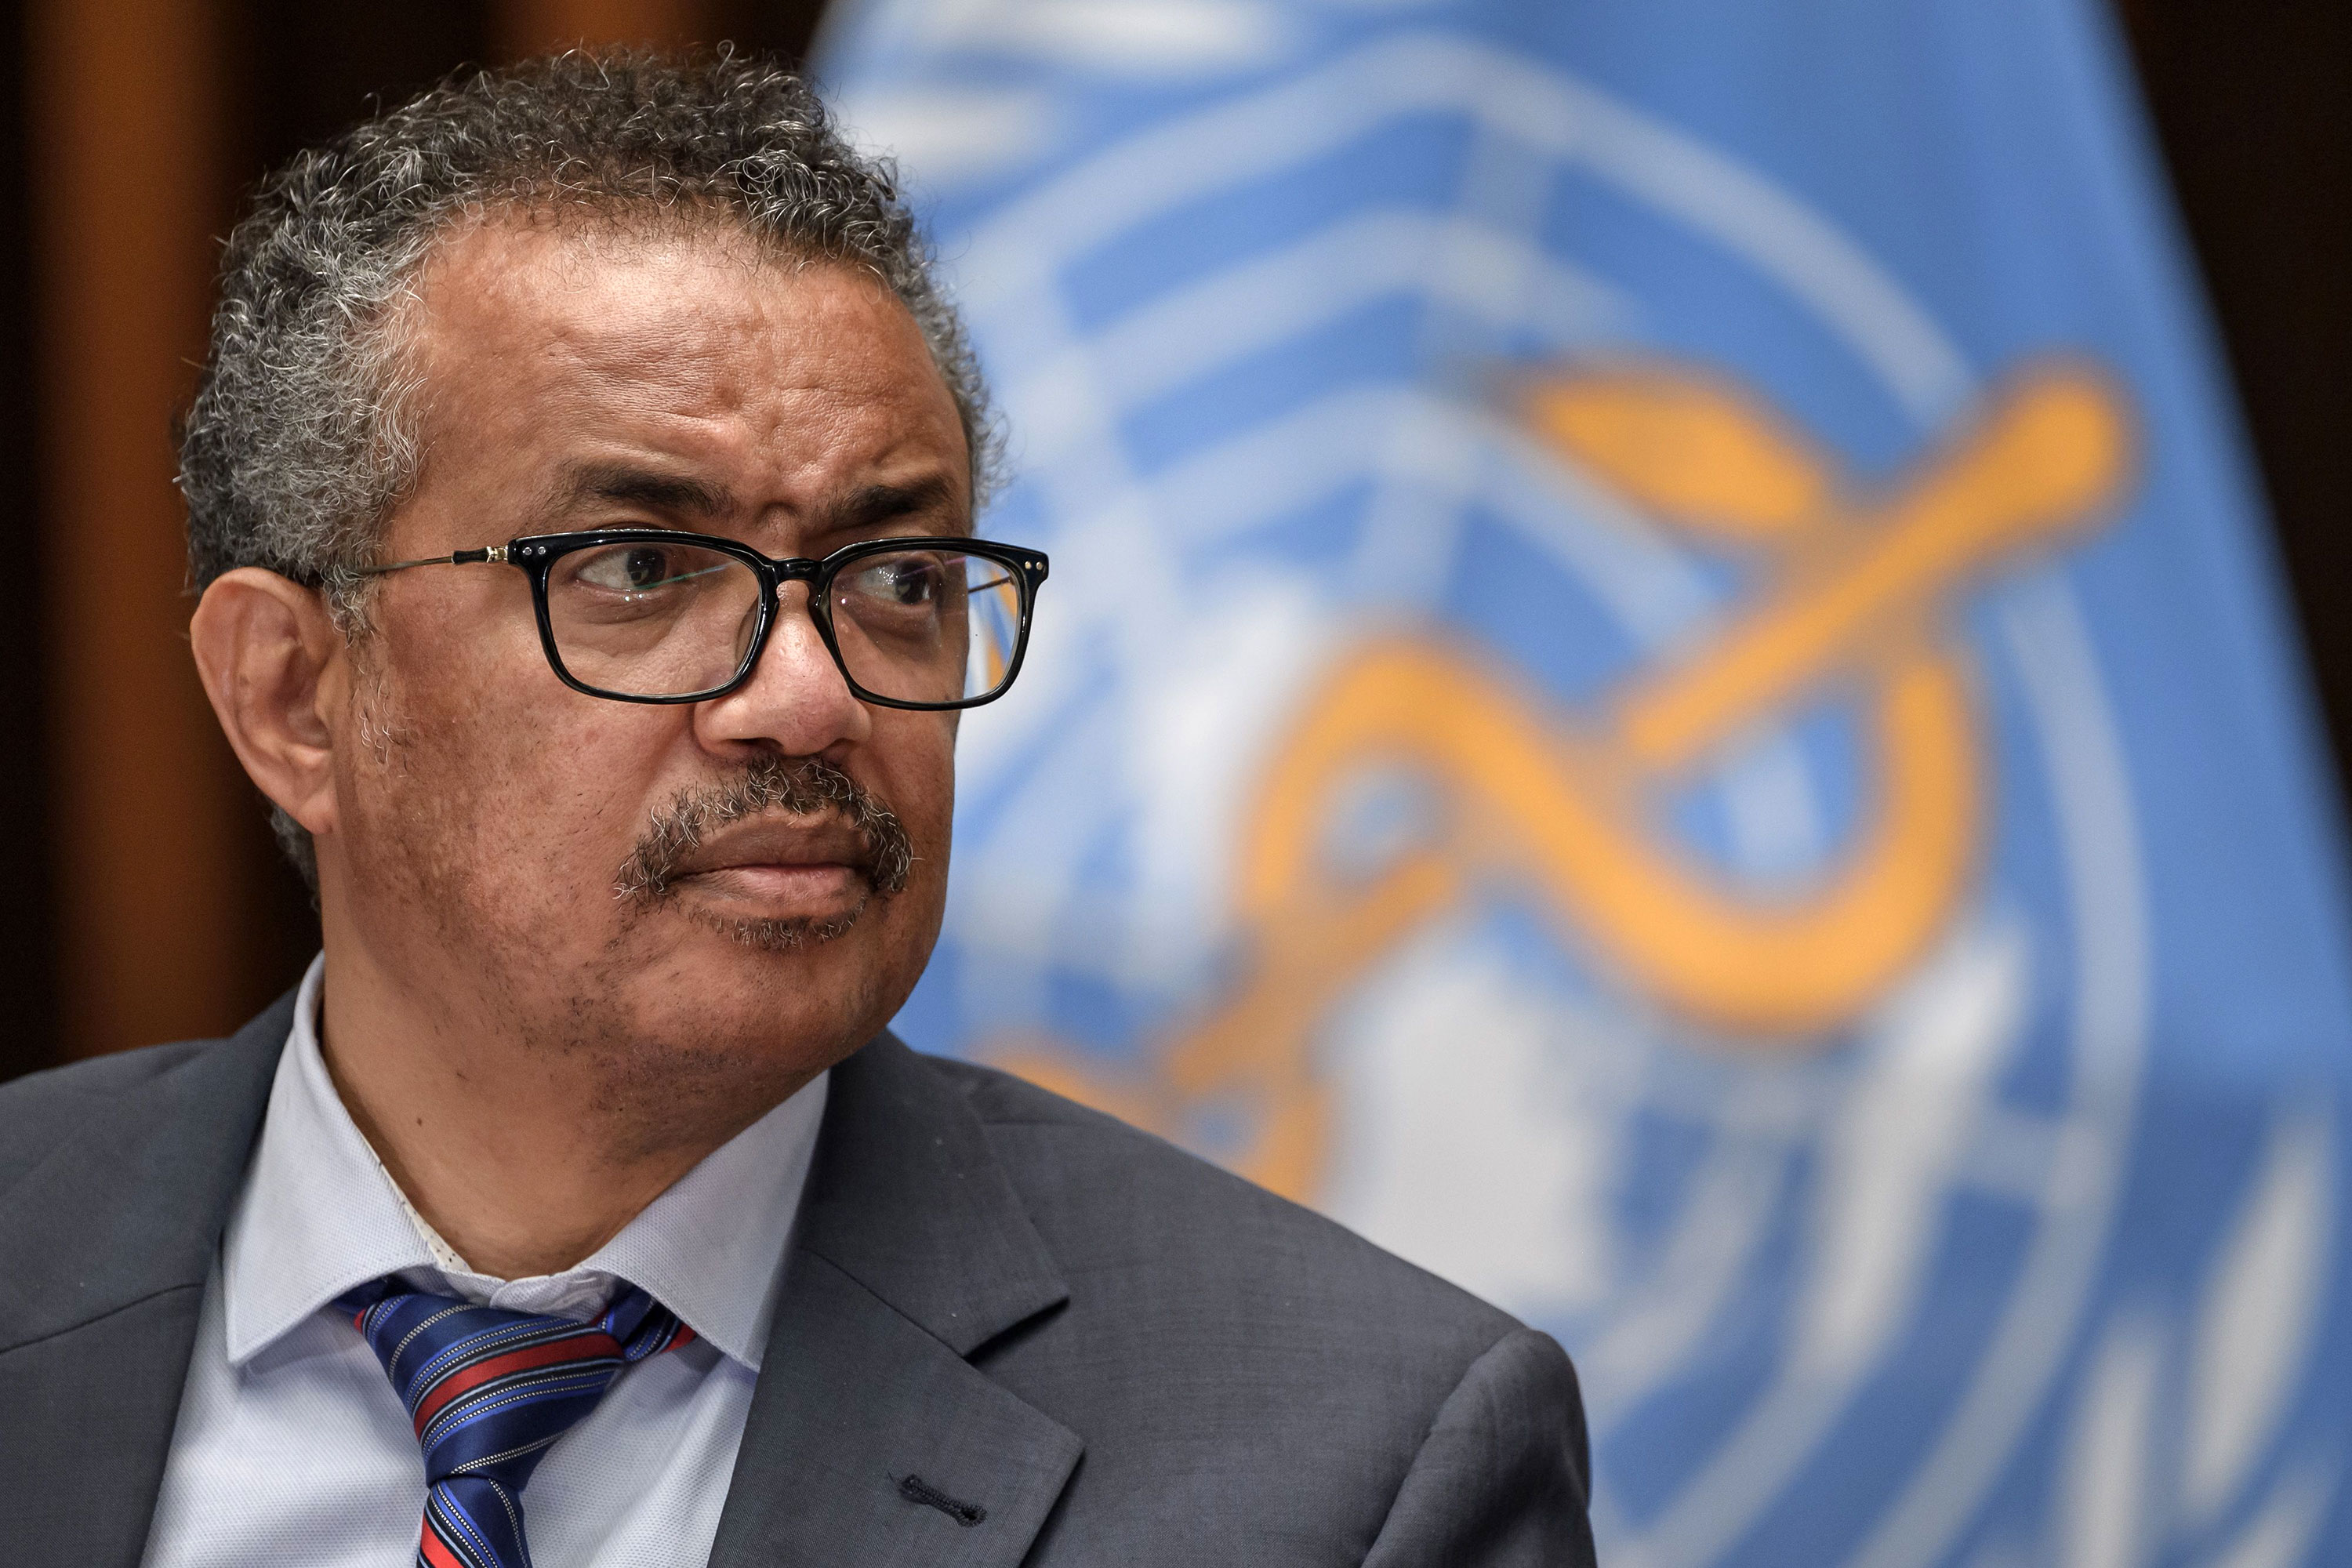 World Health Organization Director-General Tedros Adhanom Ghebreyesus attends a press conference on July 3 at the WHO headquarters in Geneva.